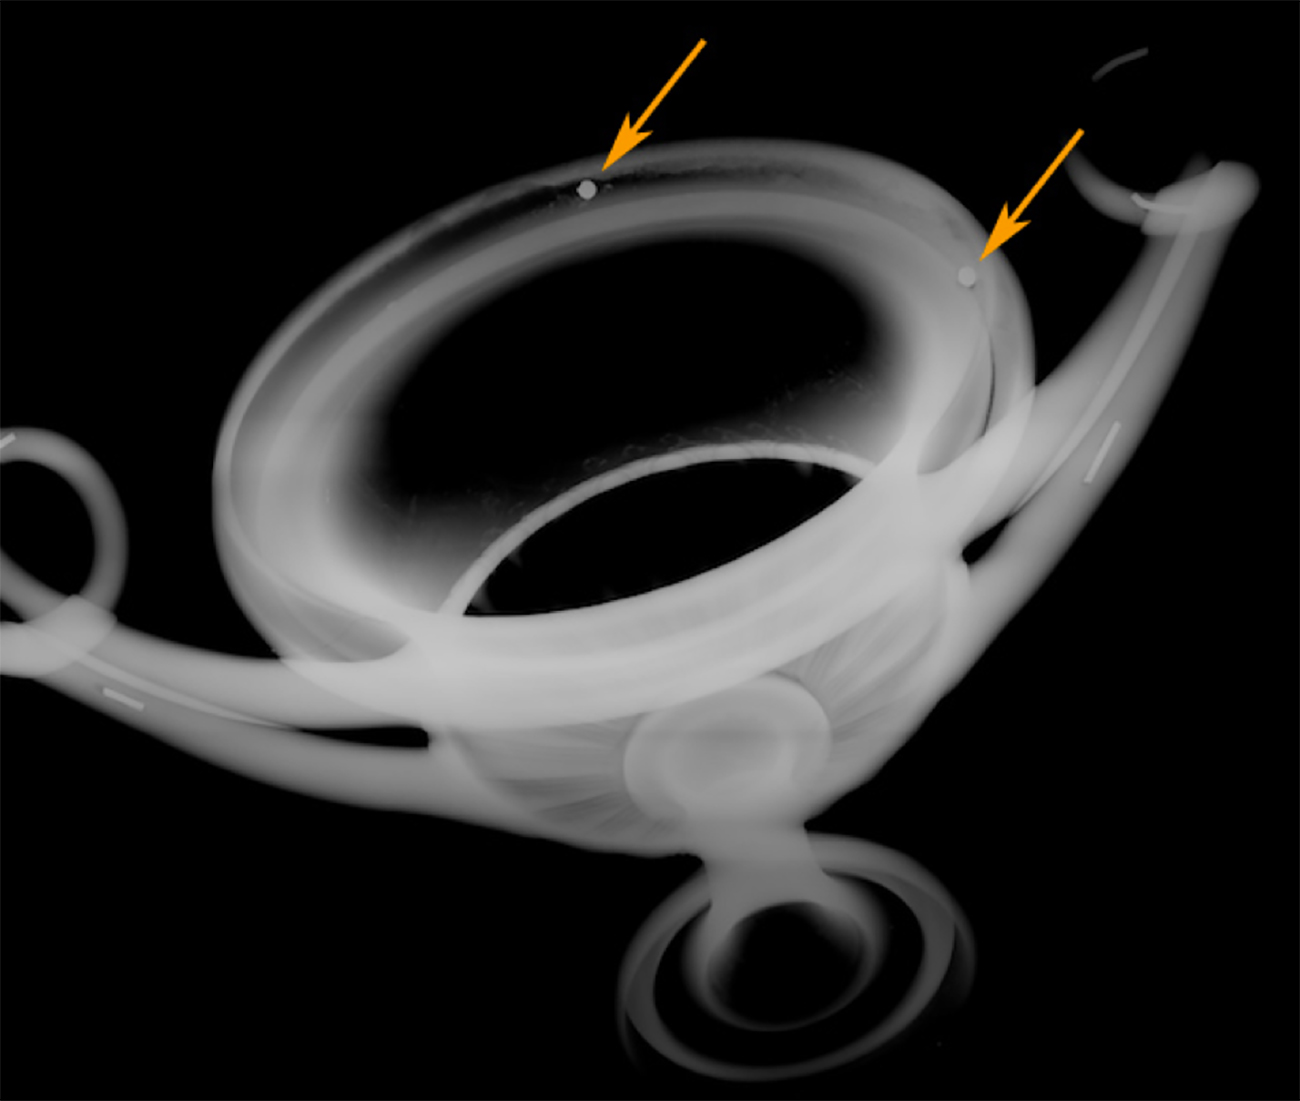 In the X-ray of the rattling kantharos, two small, opaque gray circles show in the rim of the cup.